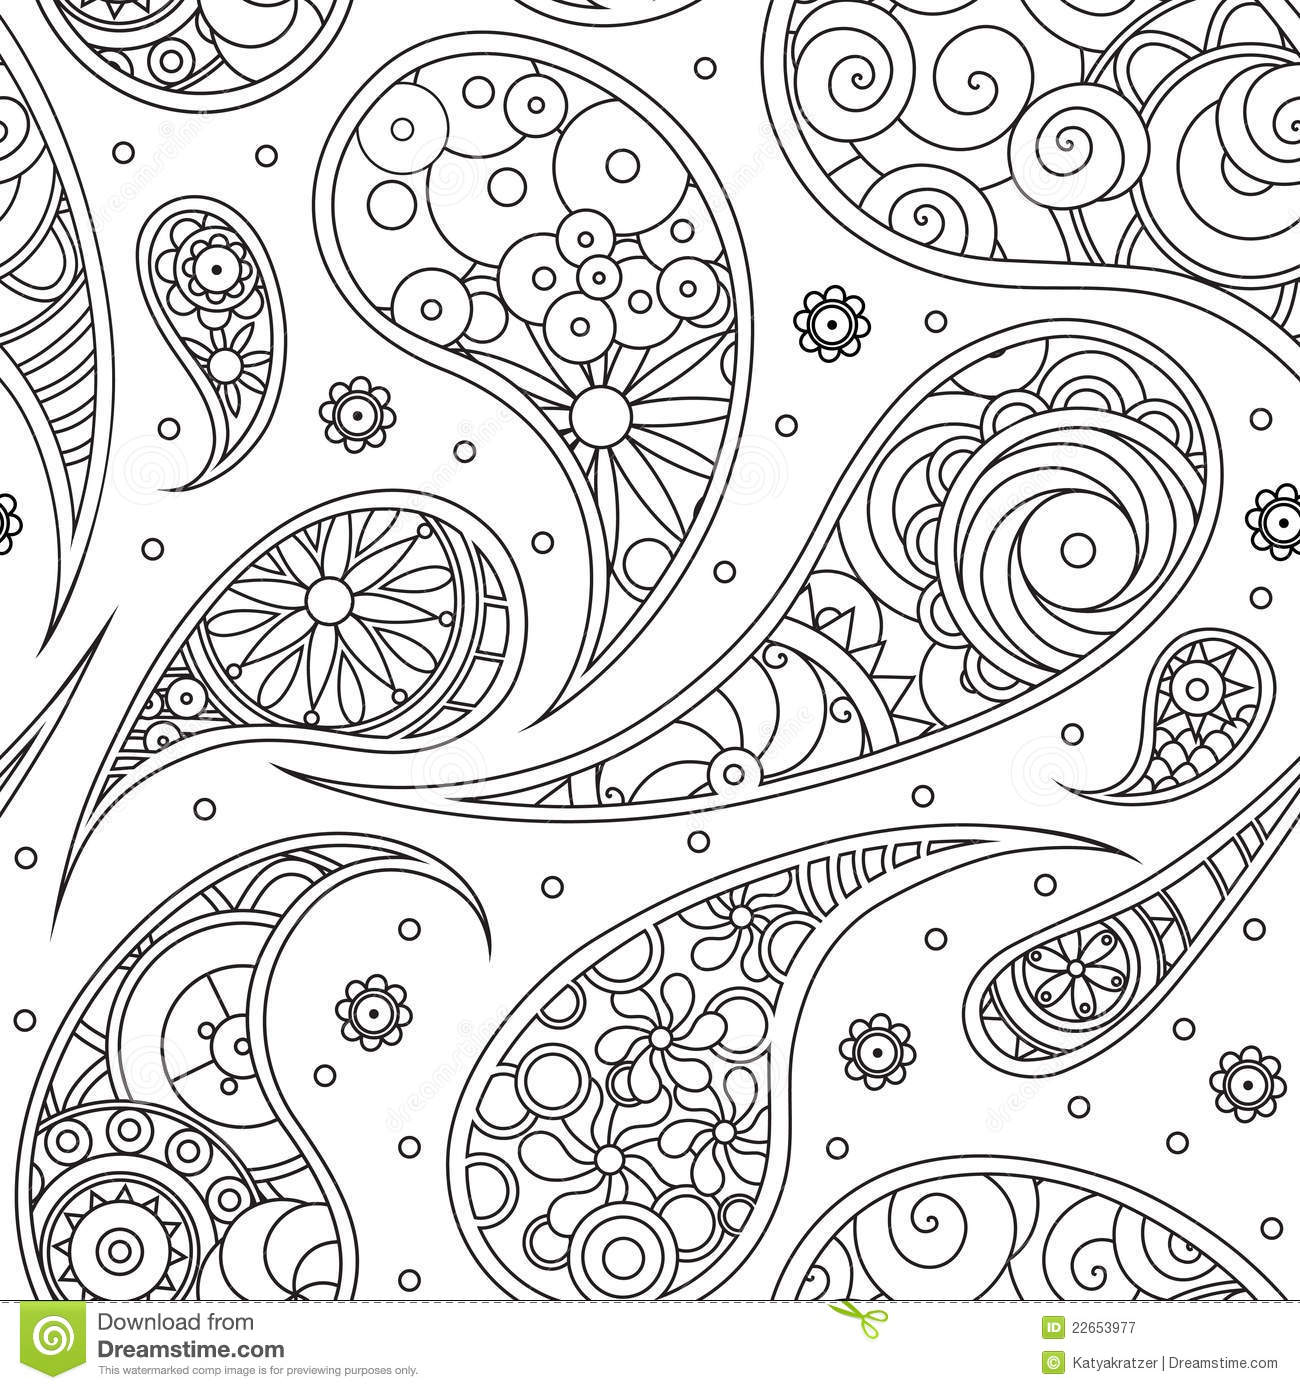 Paisley pattern stock vector. Image of decoration, detail